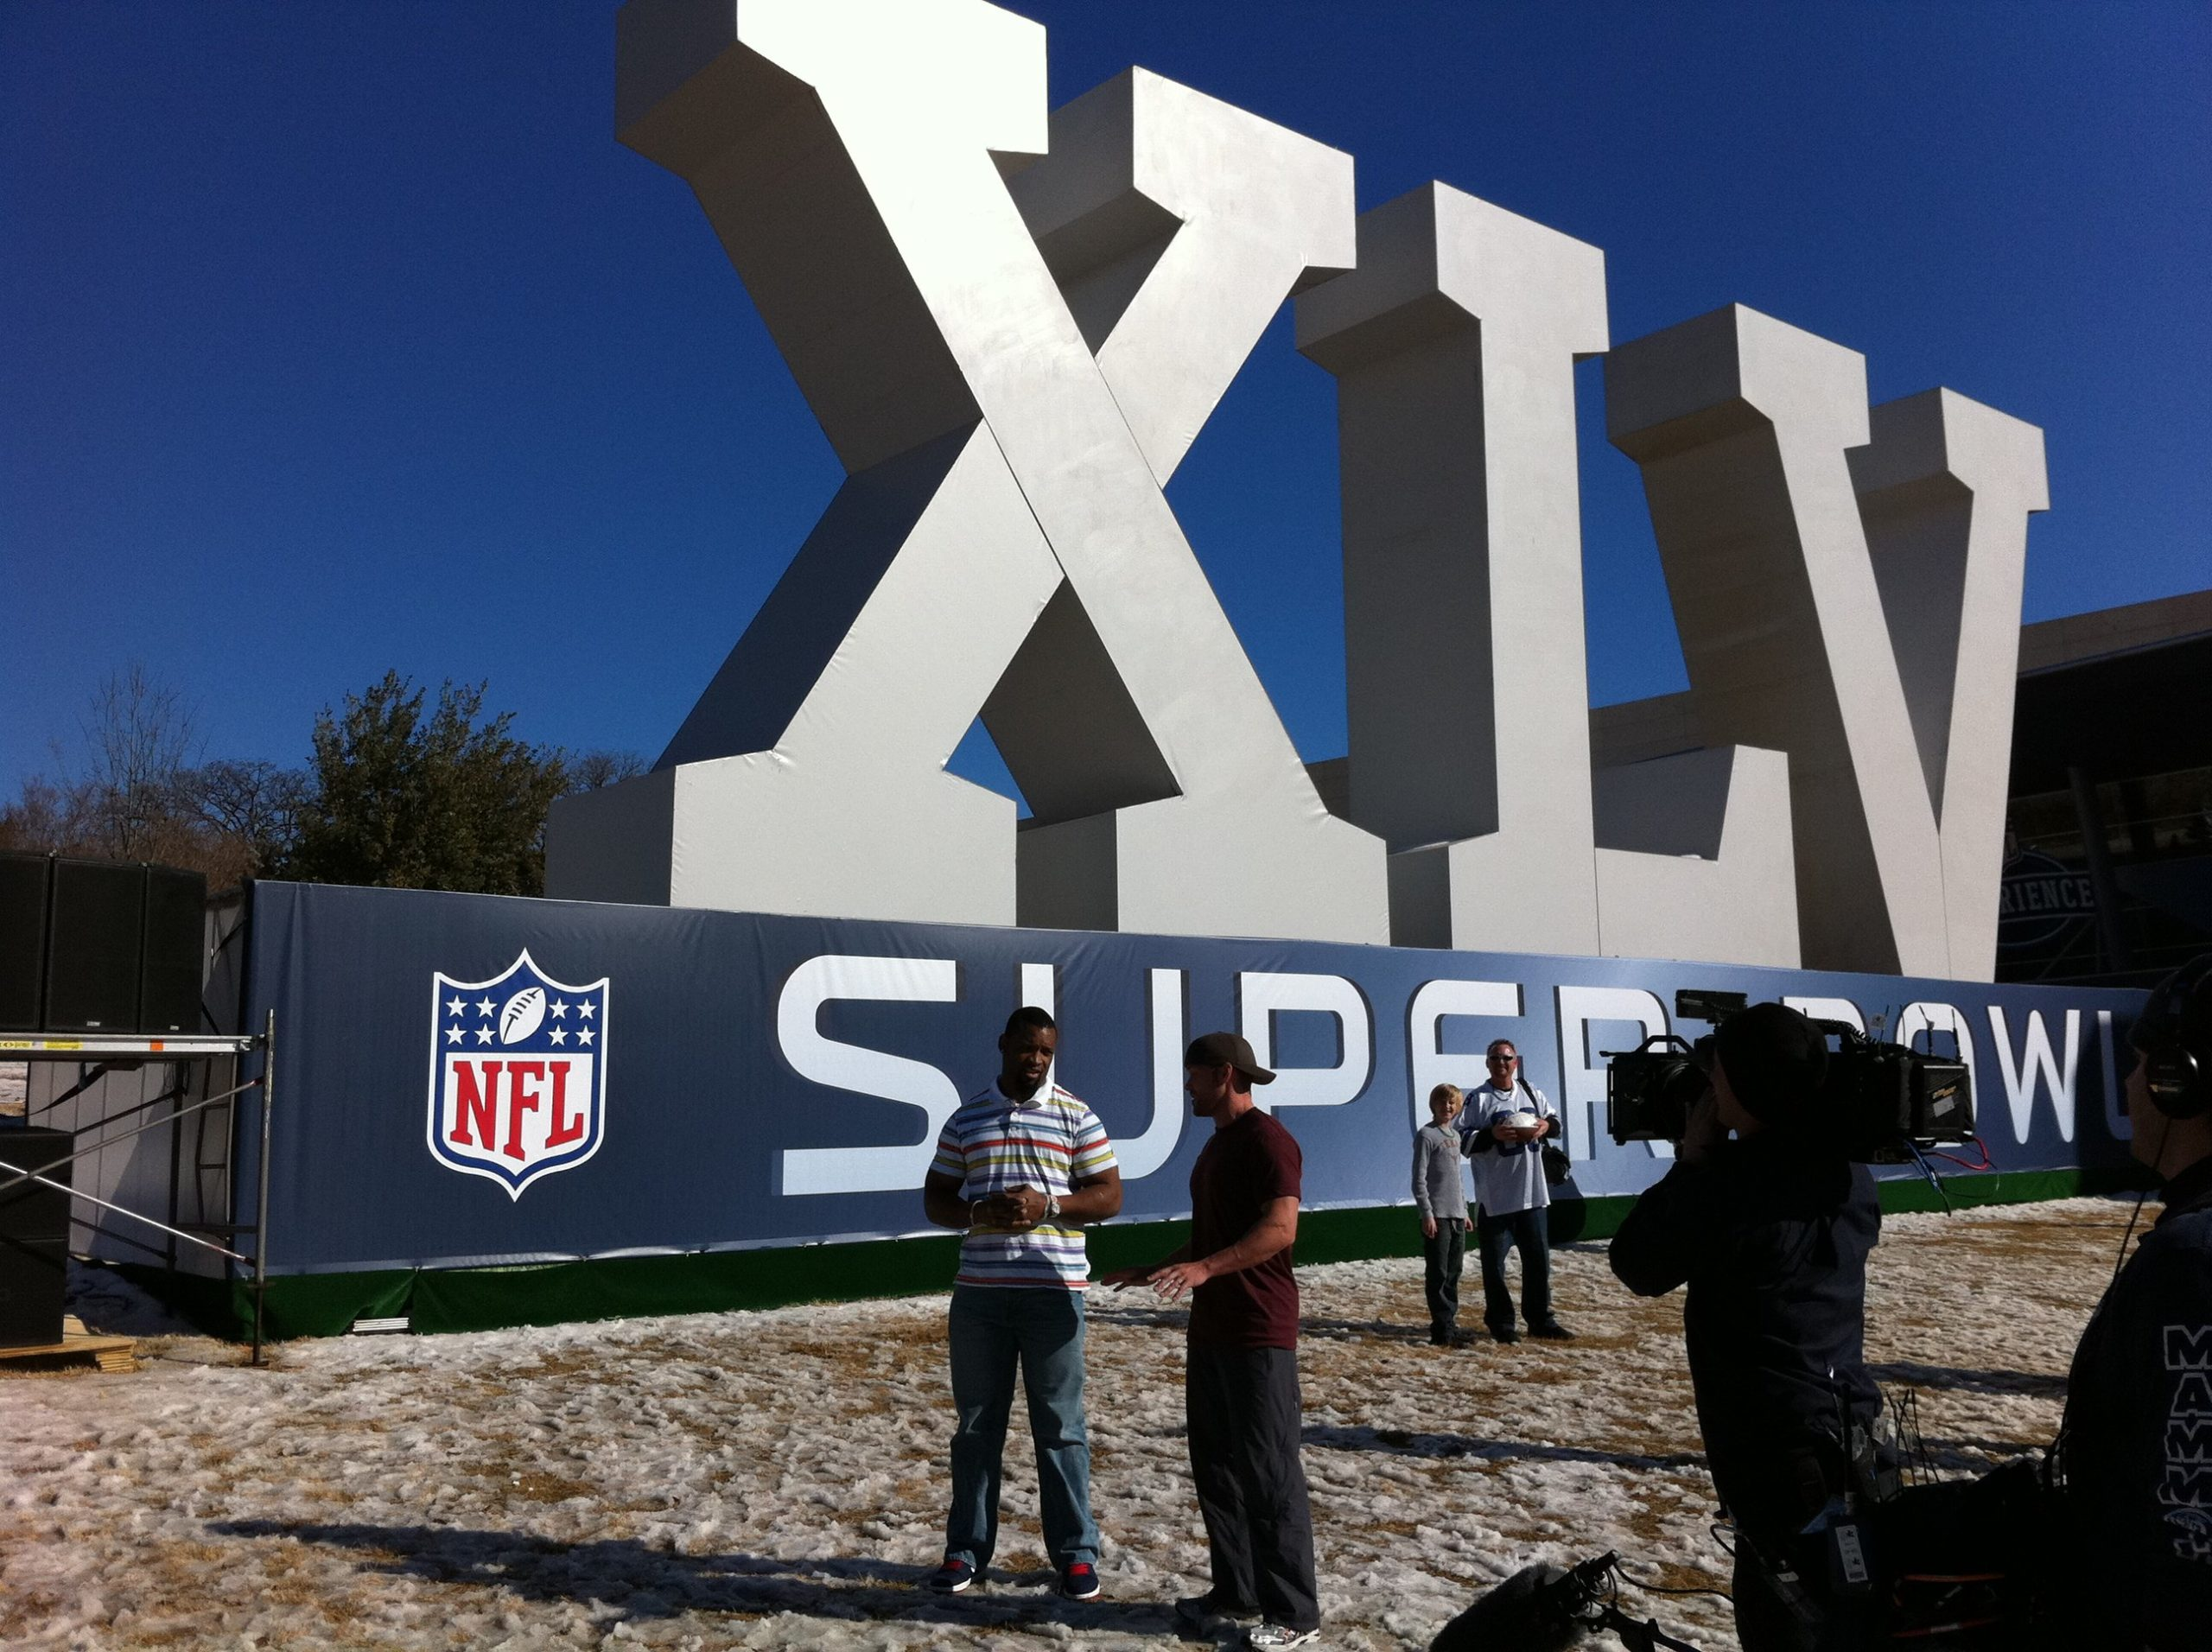 Hubby Chris Powell at SuperBowl XLV during the filming of Extreme Makeover: Weight Loss Edition - Learn more at https://heidipowell.net/340